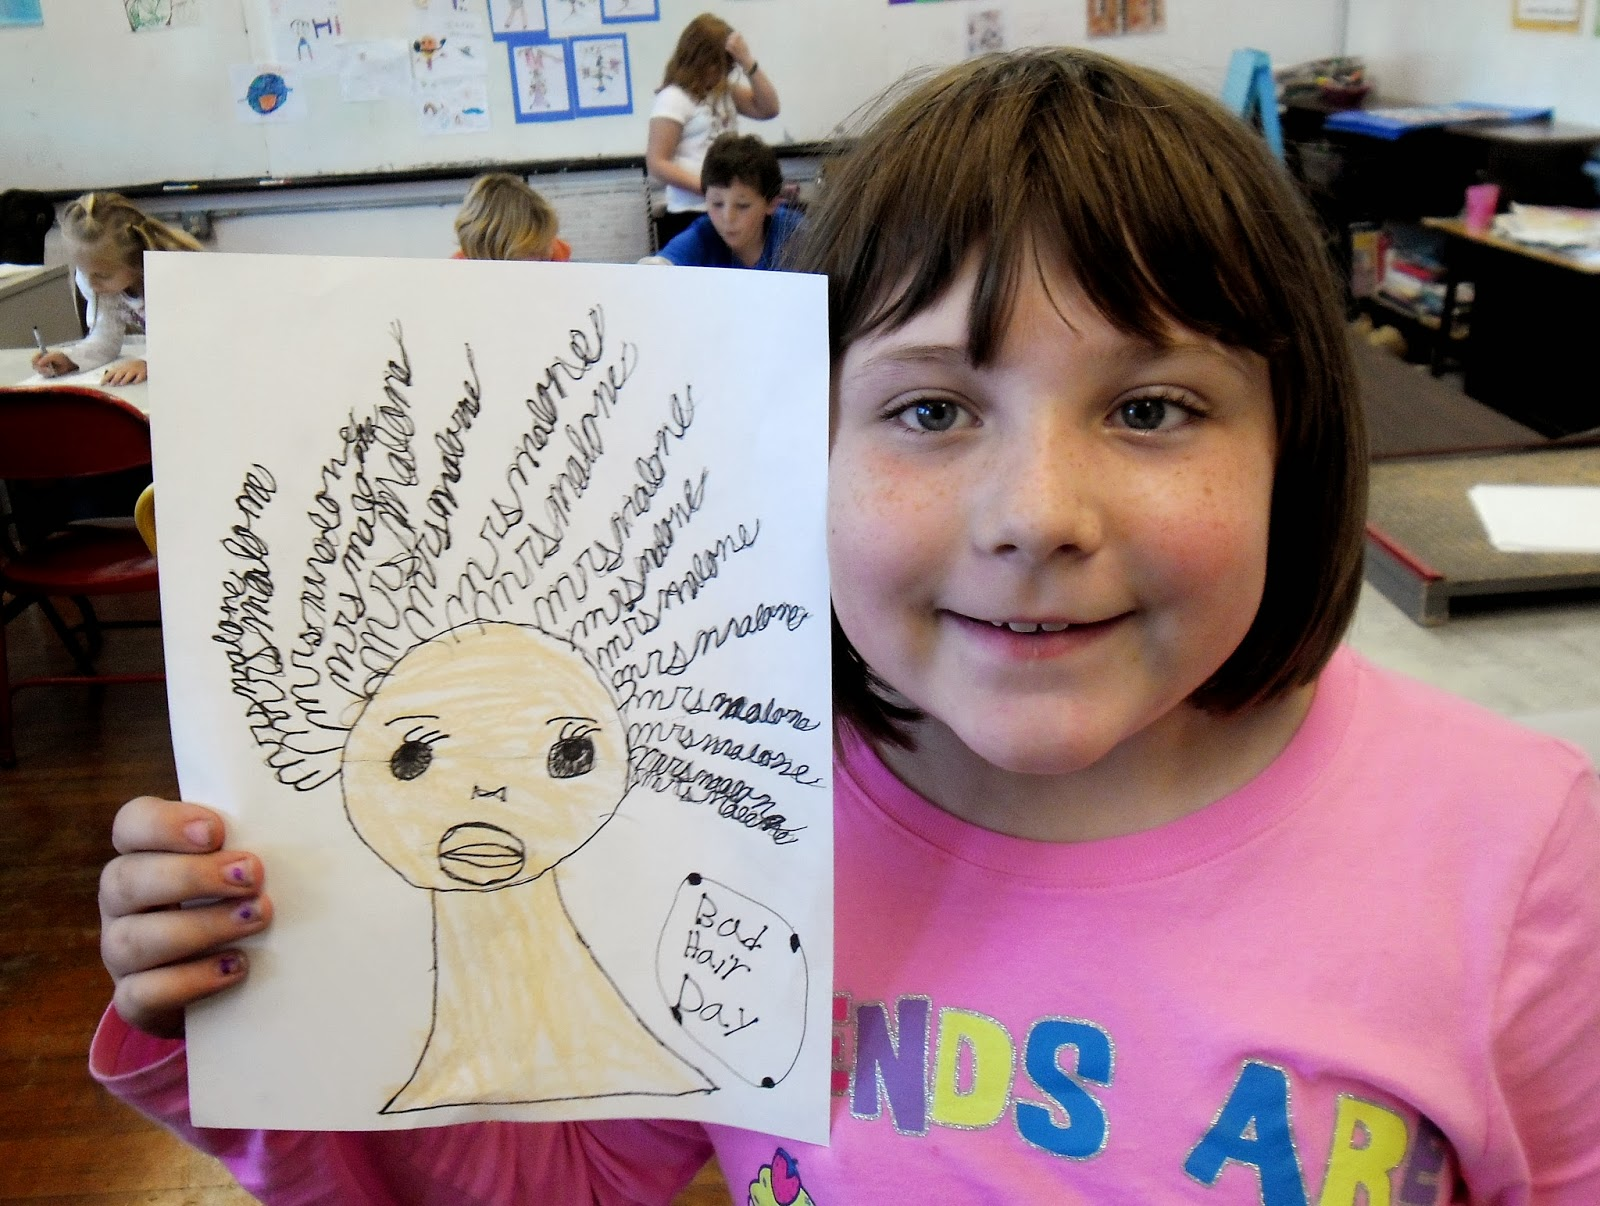 Bad Hair Day Drawings Lessons From The K 12 Art Room